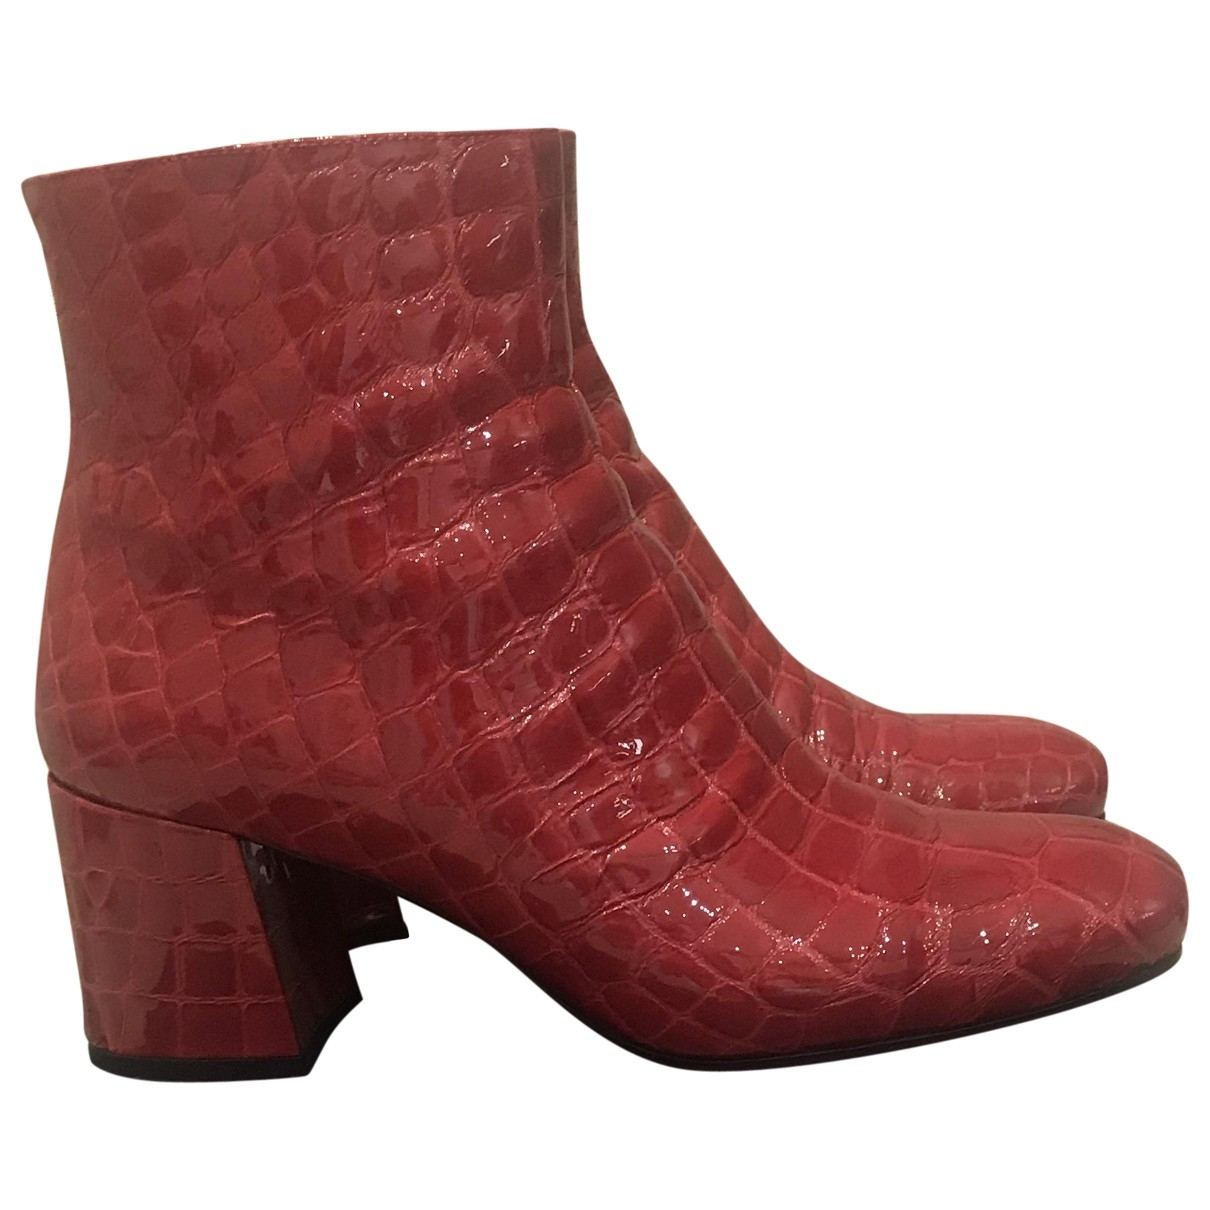 Le Silla \N Burgundy Leather Ankle boots for Women 37.5 EU